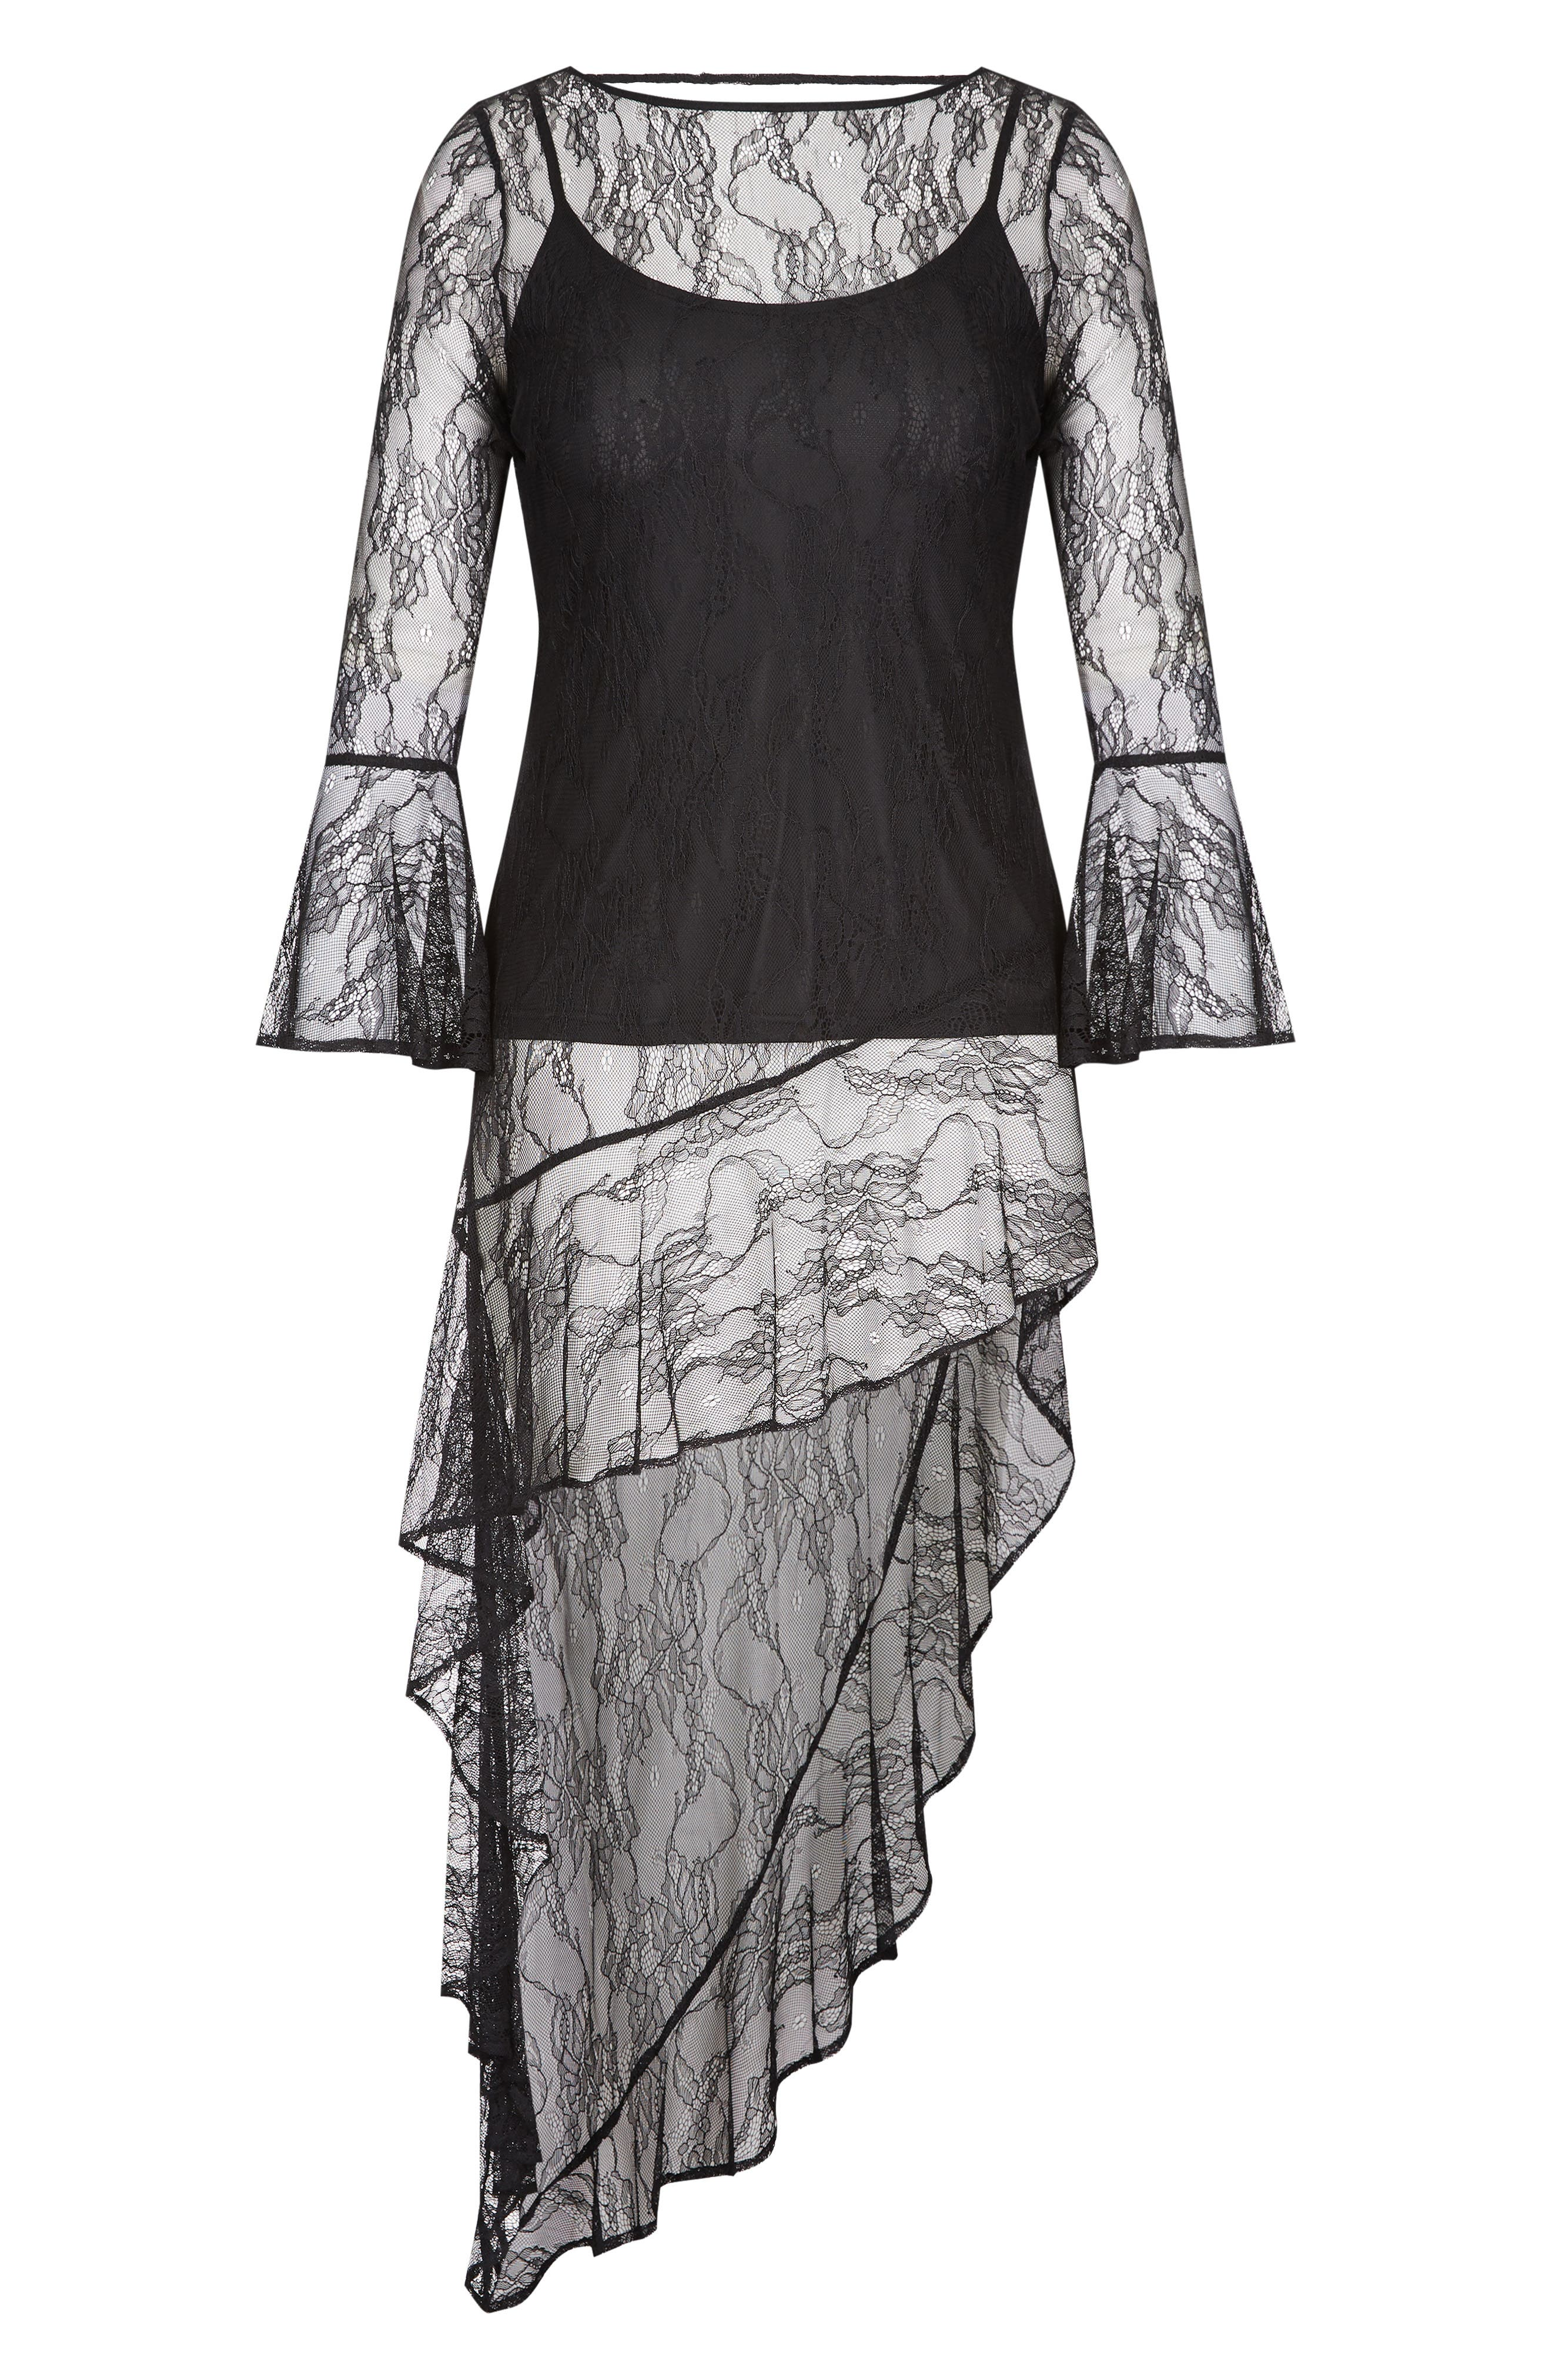 CITY CHIC, Sheer Lace Top, Alternate thumbnail 3, color, BLACK